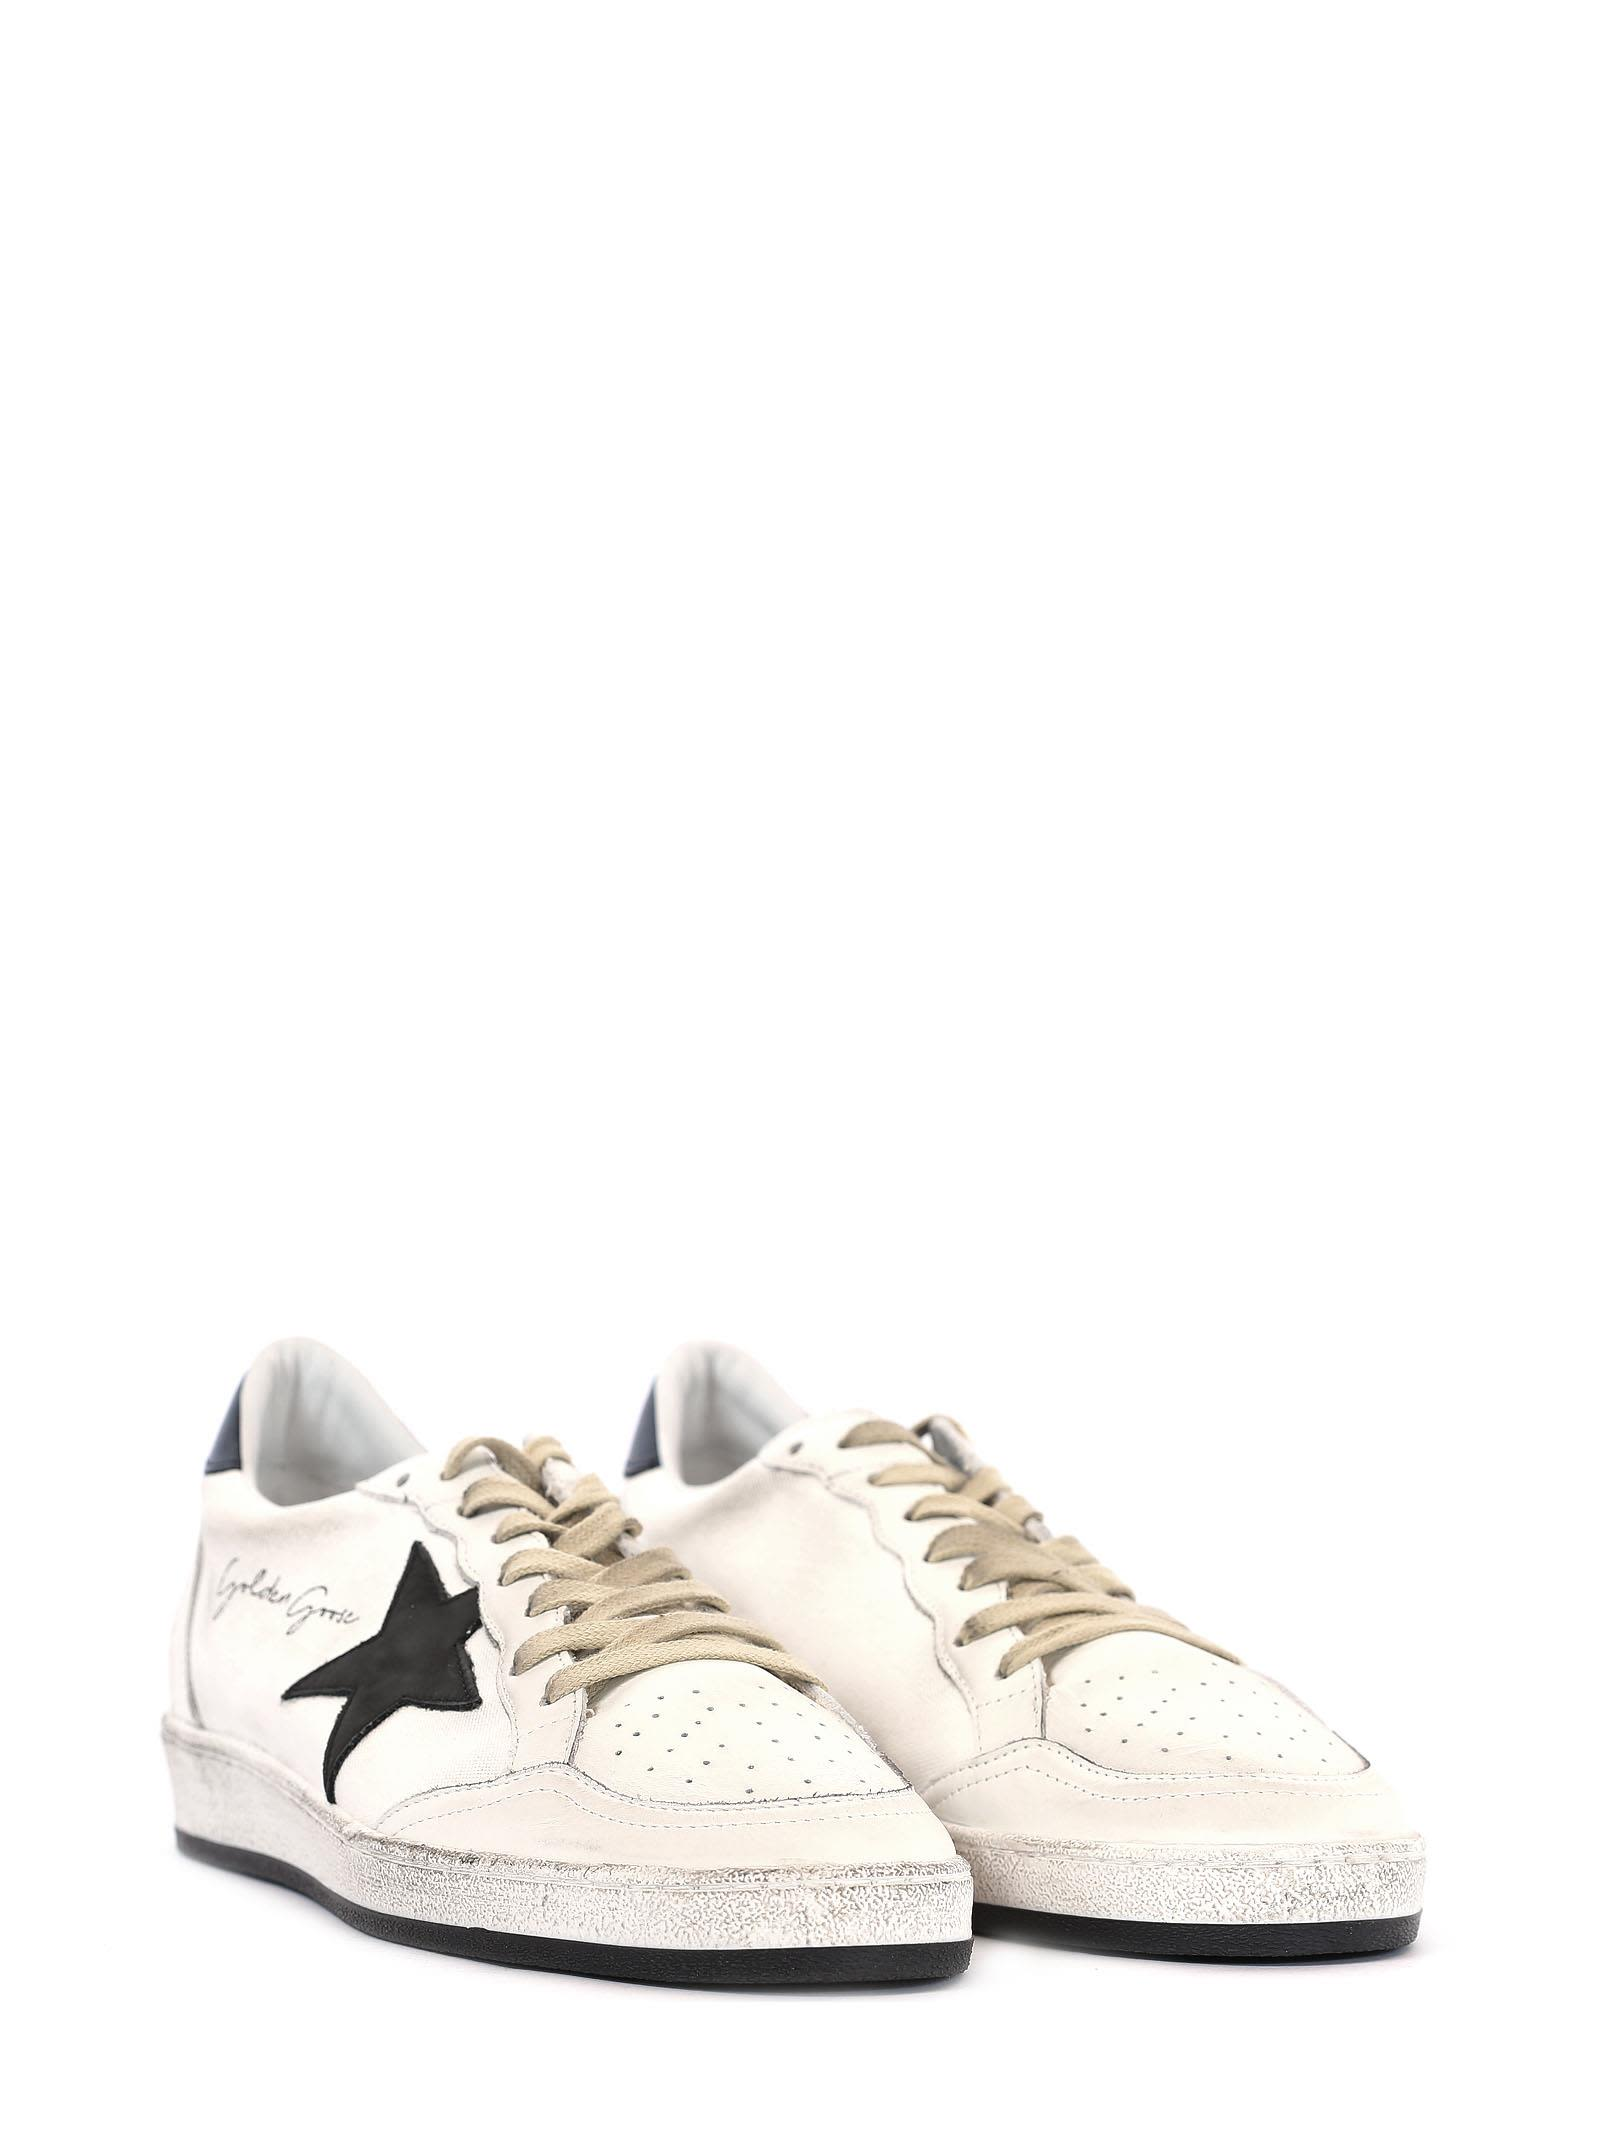 Golden Goose White Signature Ball Star Sneakers wNePBKb7Fn